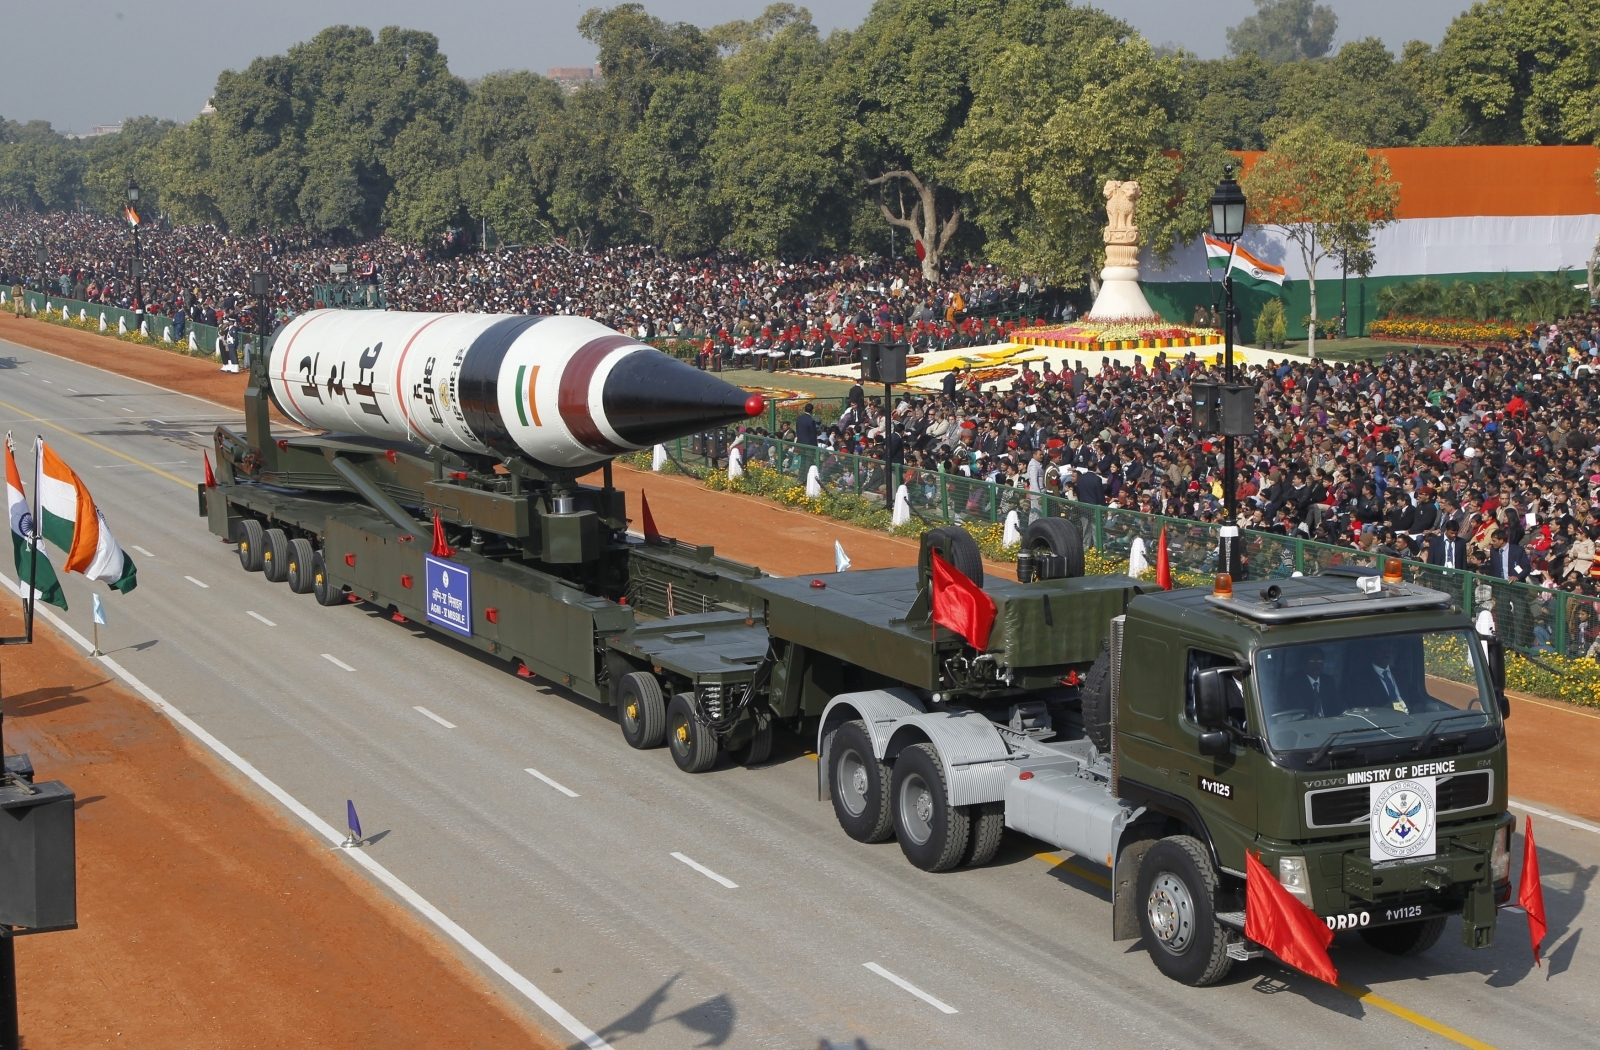 India Test-Fires Nuclear-Capable Intercontinental Ballistic Missile